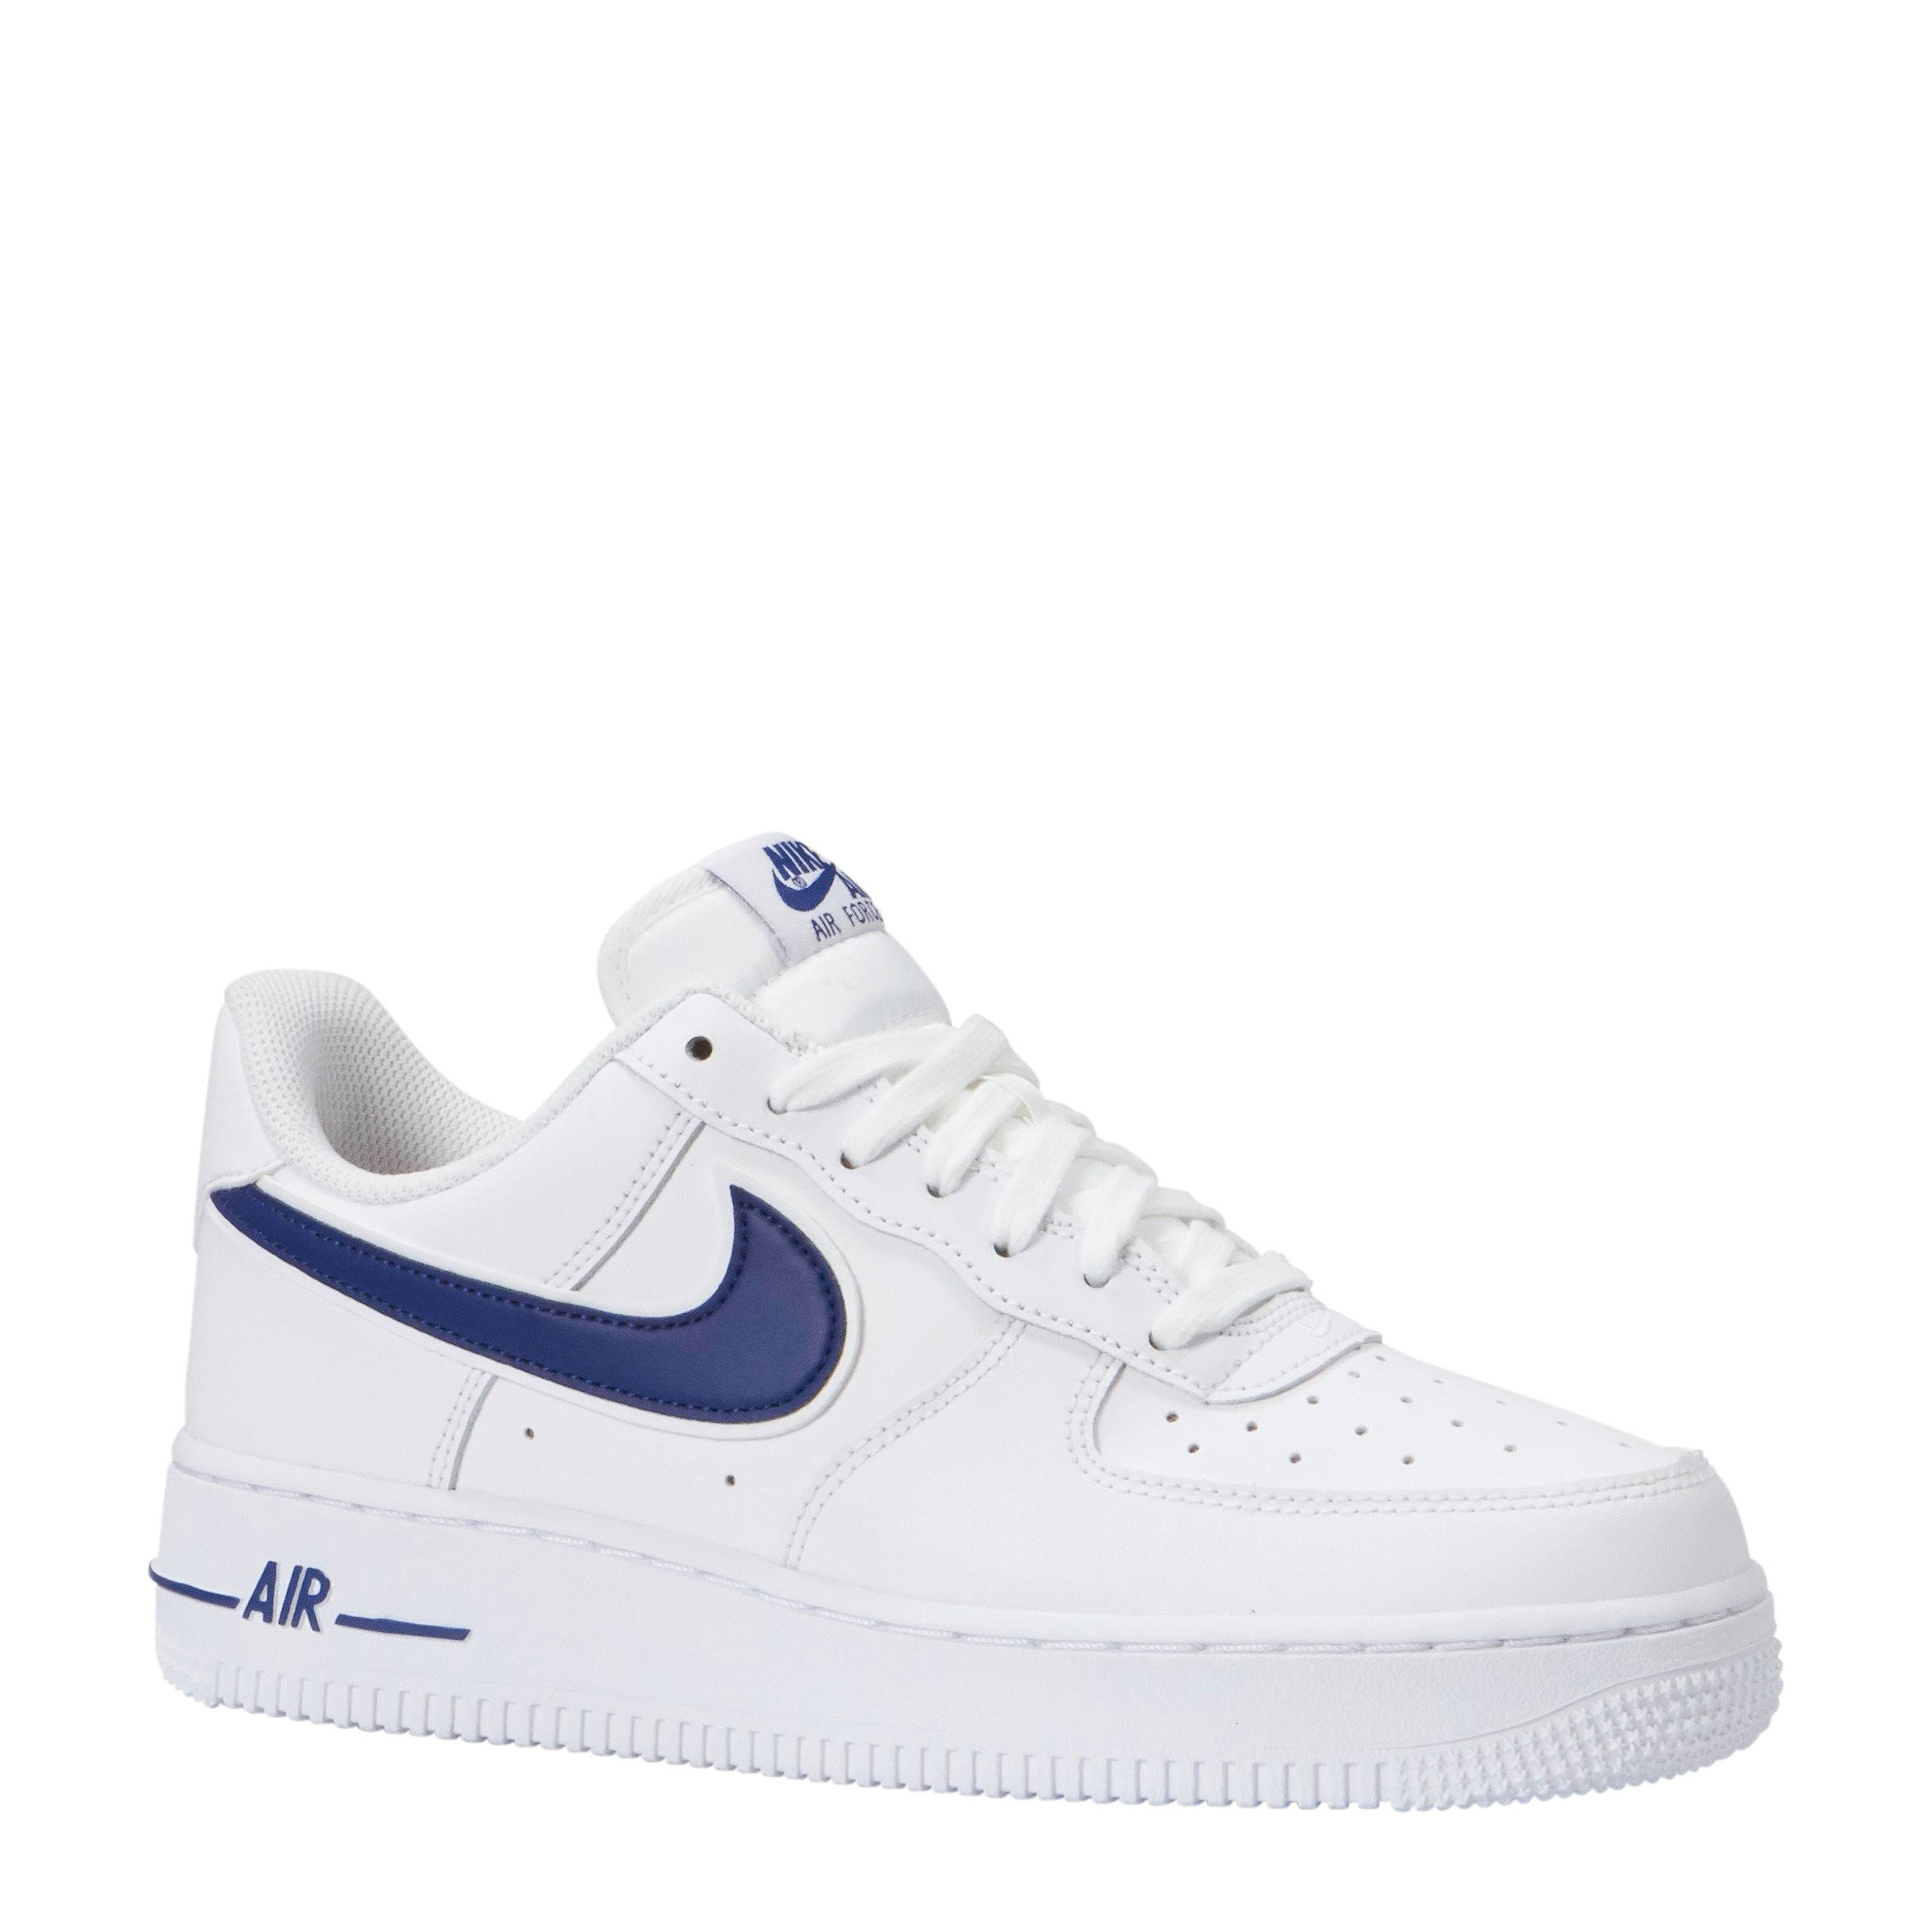 the latest 1a416 c8c95 nike-air-foce-1-07-3-sneakers-leer-wit-blauw-wit-0886059536192.jpg